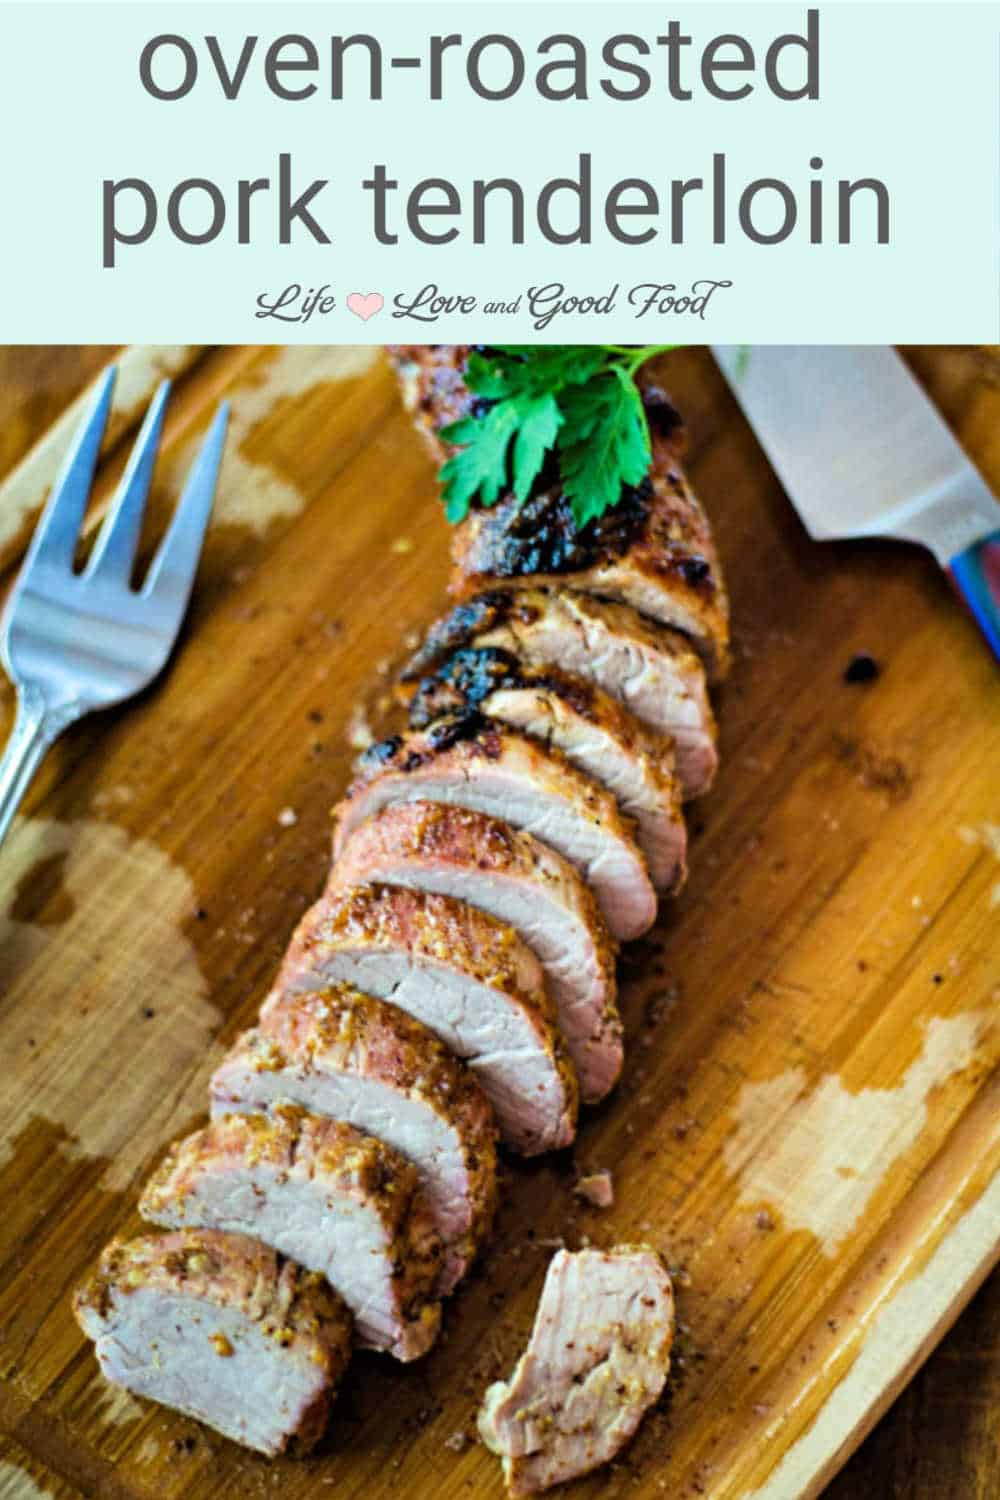 Maple Dijon Oven-Roasted Pork Tenderloin is a melt-in-your-mouth, super-easy sheet pan dinner that's bursting with flavor. Lean pork tenderloin and cubed sweet potatoes are basted with a sweet and savory sauce made with pure maple syrup, Dijon mustard, and garlic.